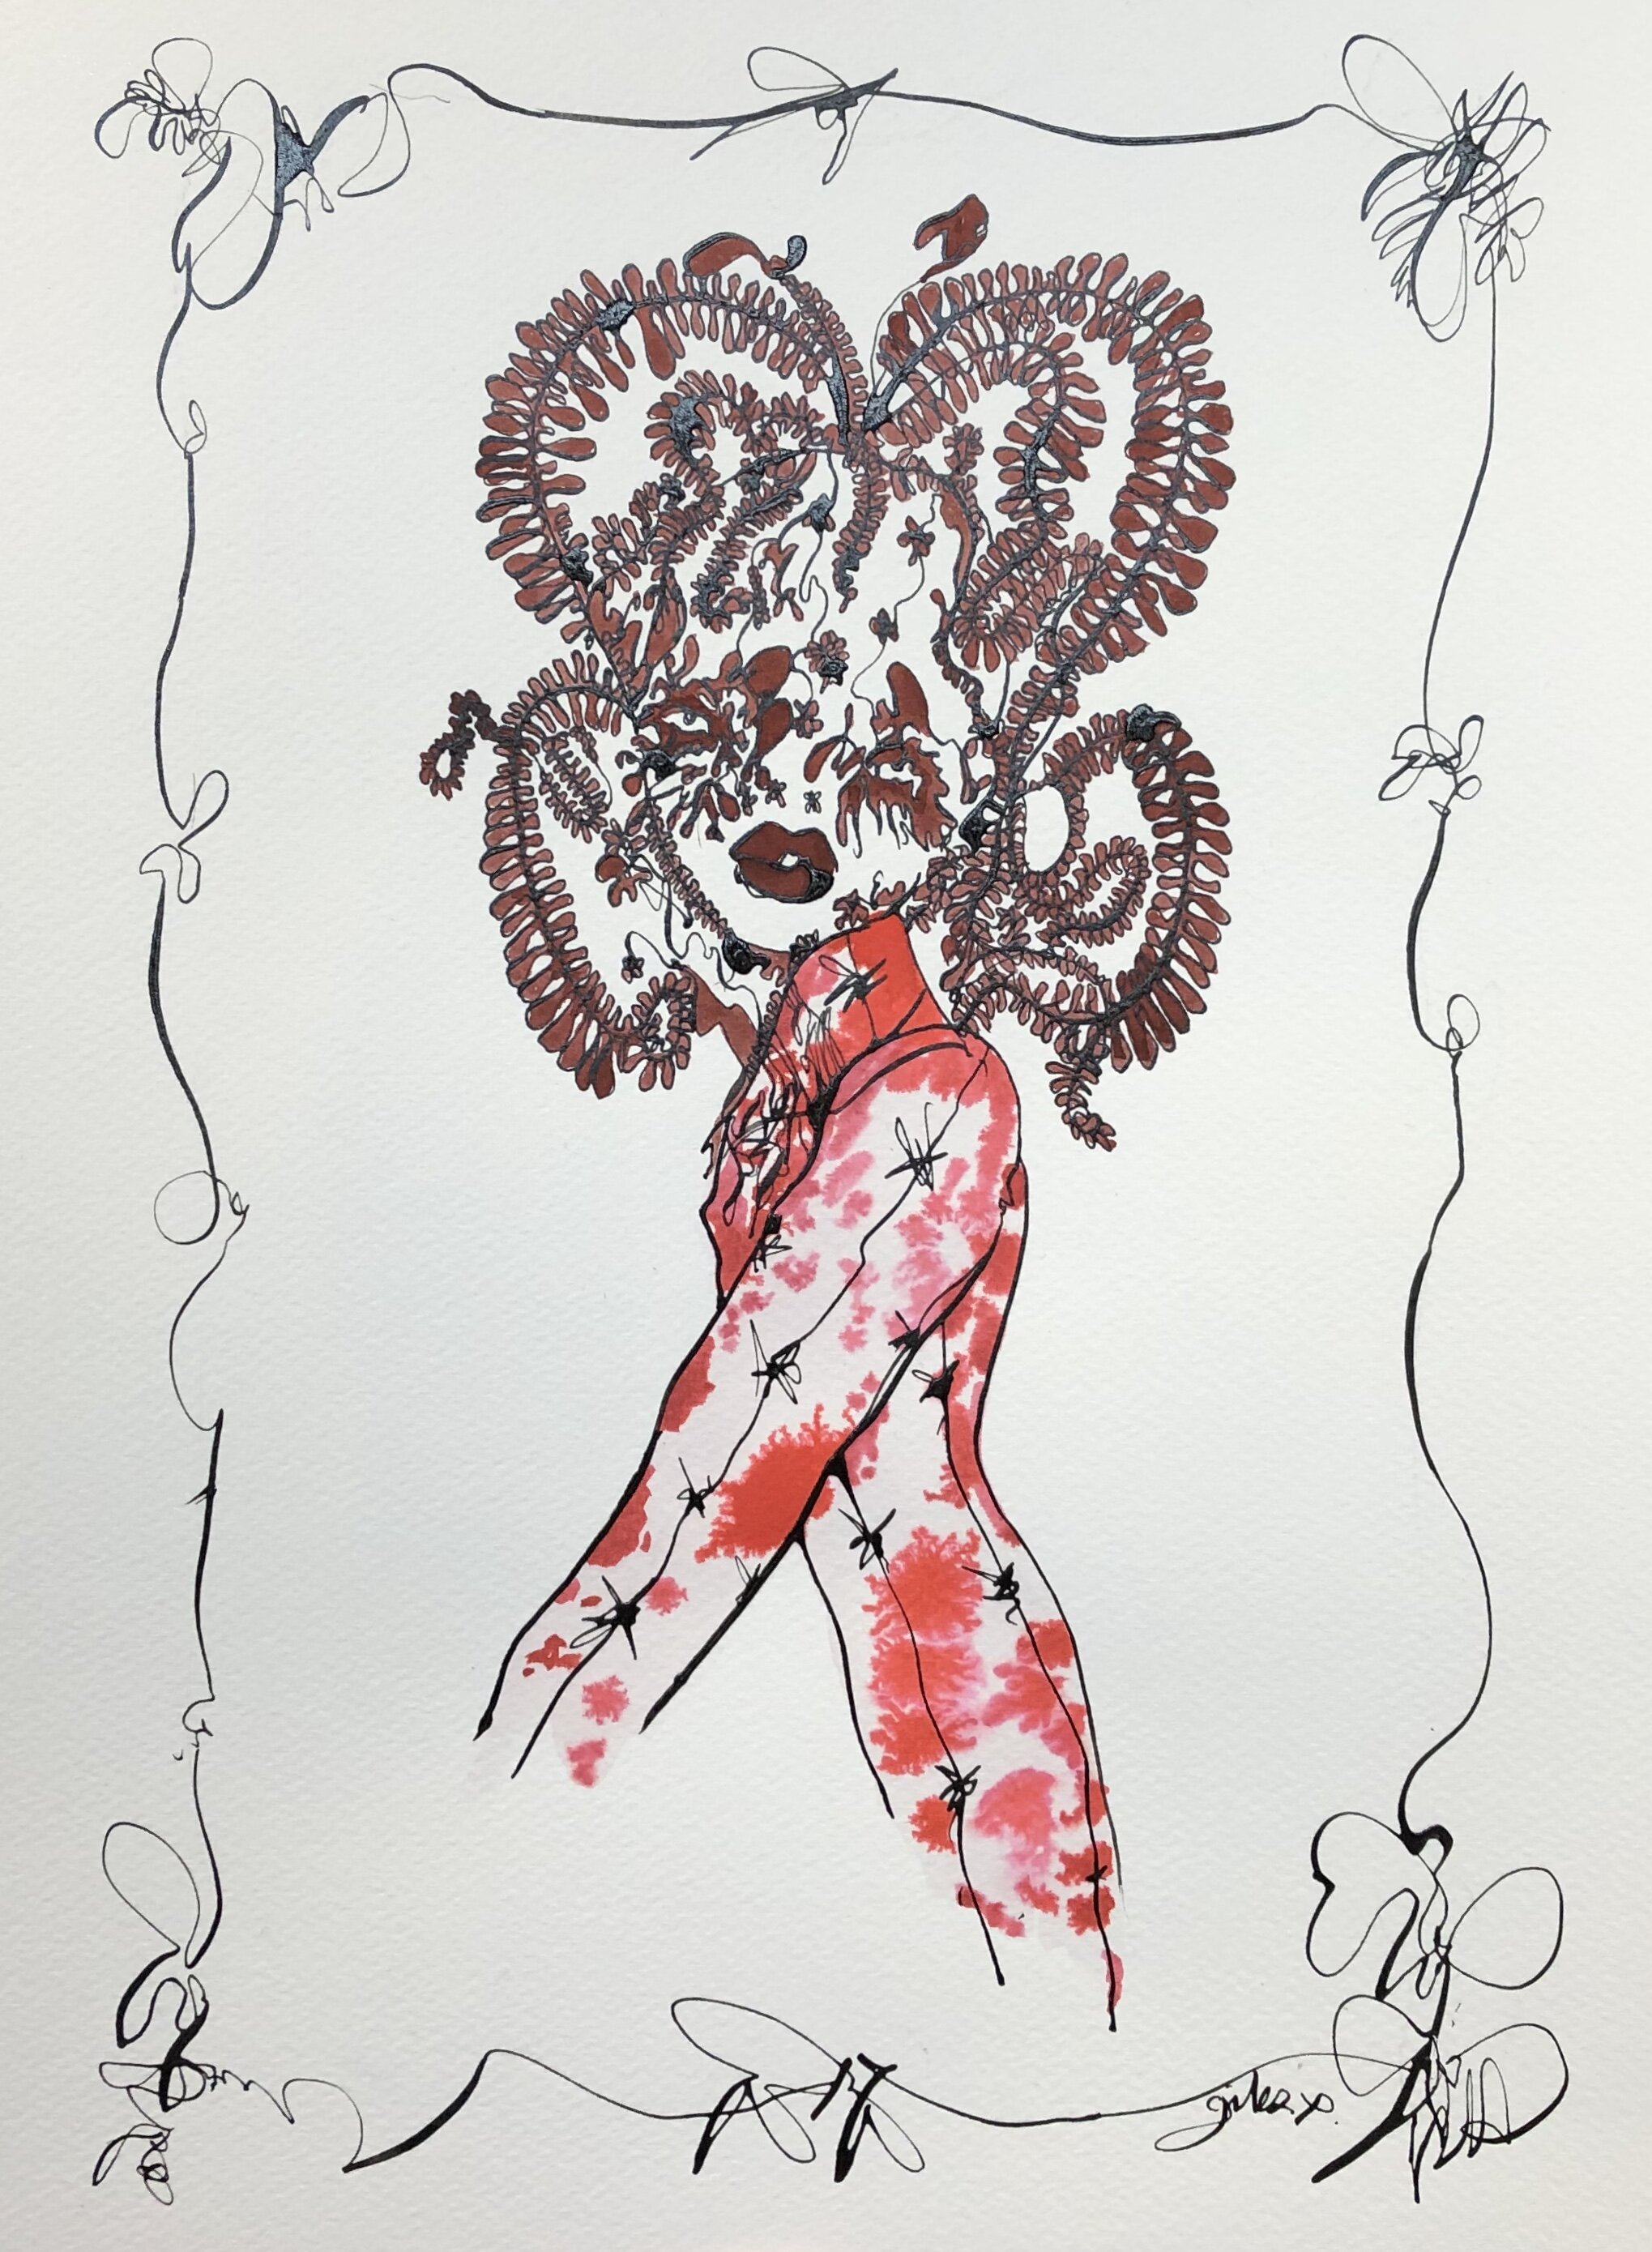 Giles Deacon - Isabella Blow, 2019Ink and watercolour on paper40 x 30cmEstimate: £1,000 - £1,500Starting bid: £800